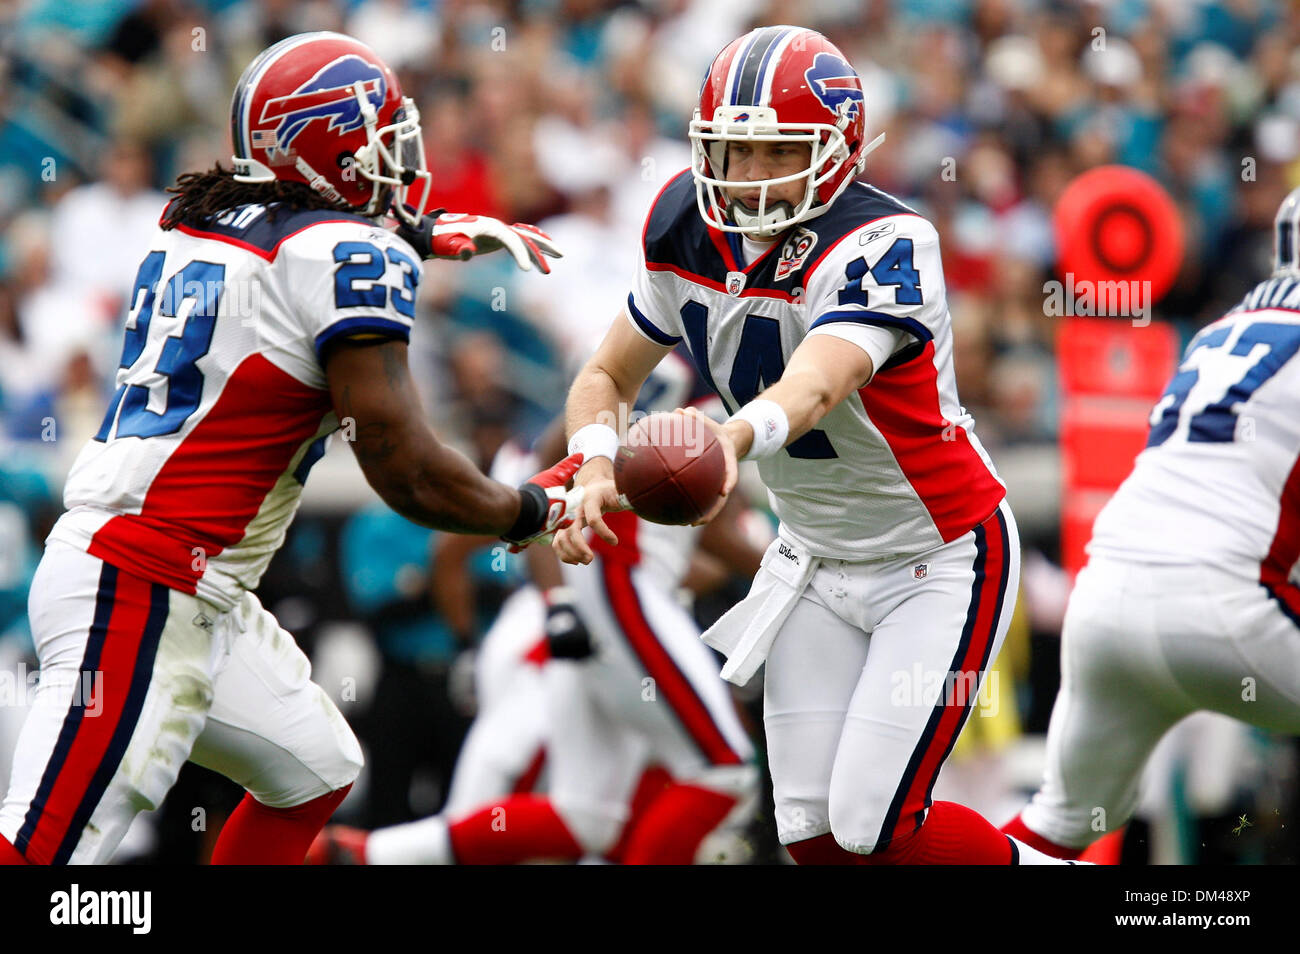 best website 9a5f8 c36f3 Buffalo Bills Ryan Fitzpatrick (14) hands off to Marshawn ...